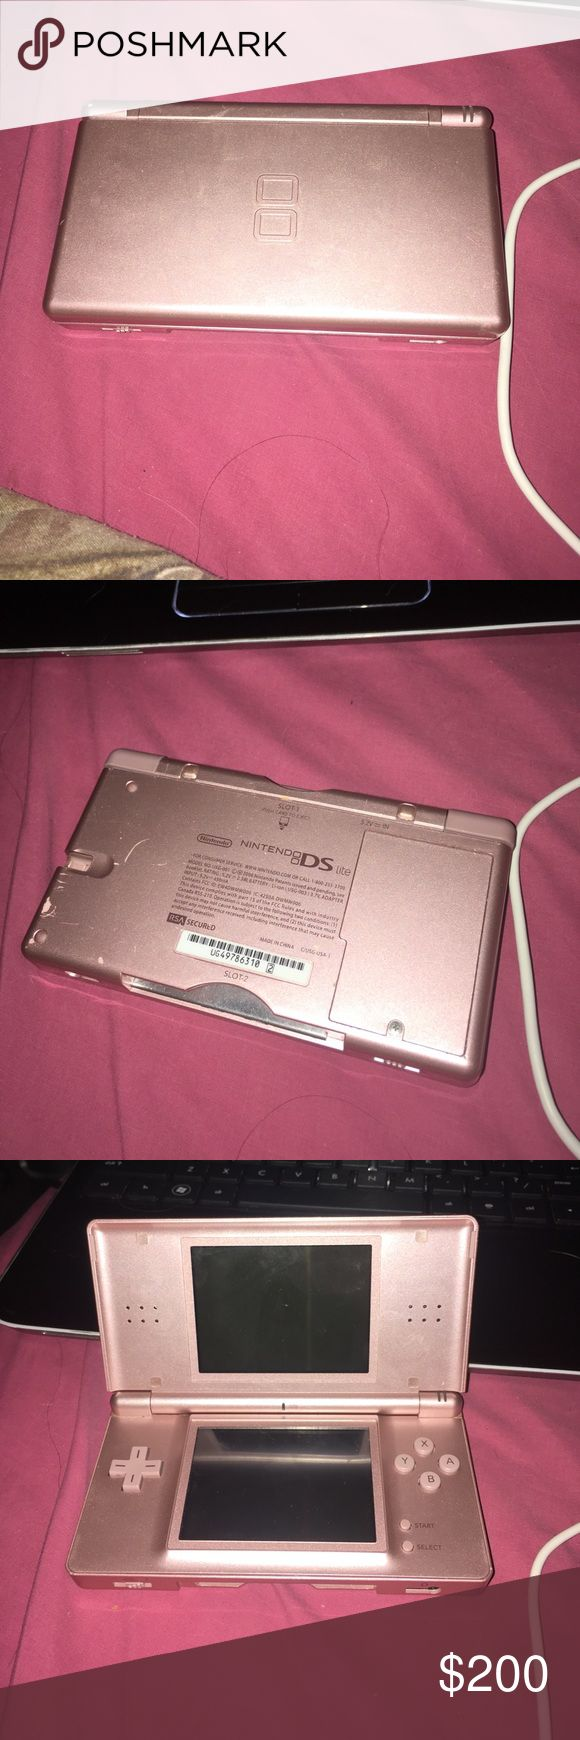 Nitendo DS lite Used Nintendo DS lite comes with charger and a couple games it does not have the pen the games come with the original case Other